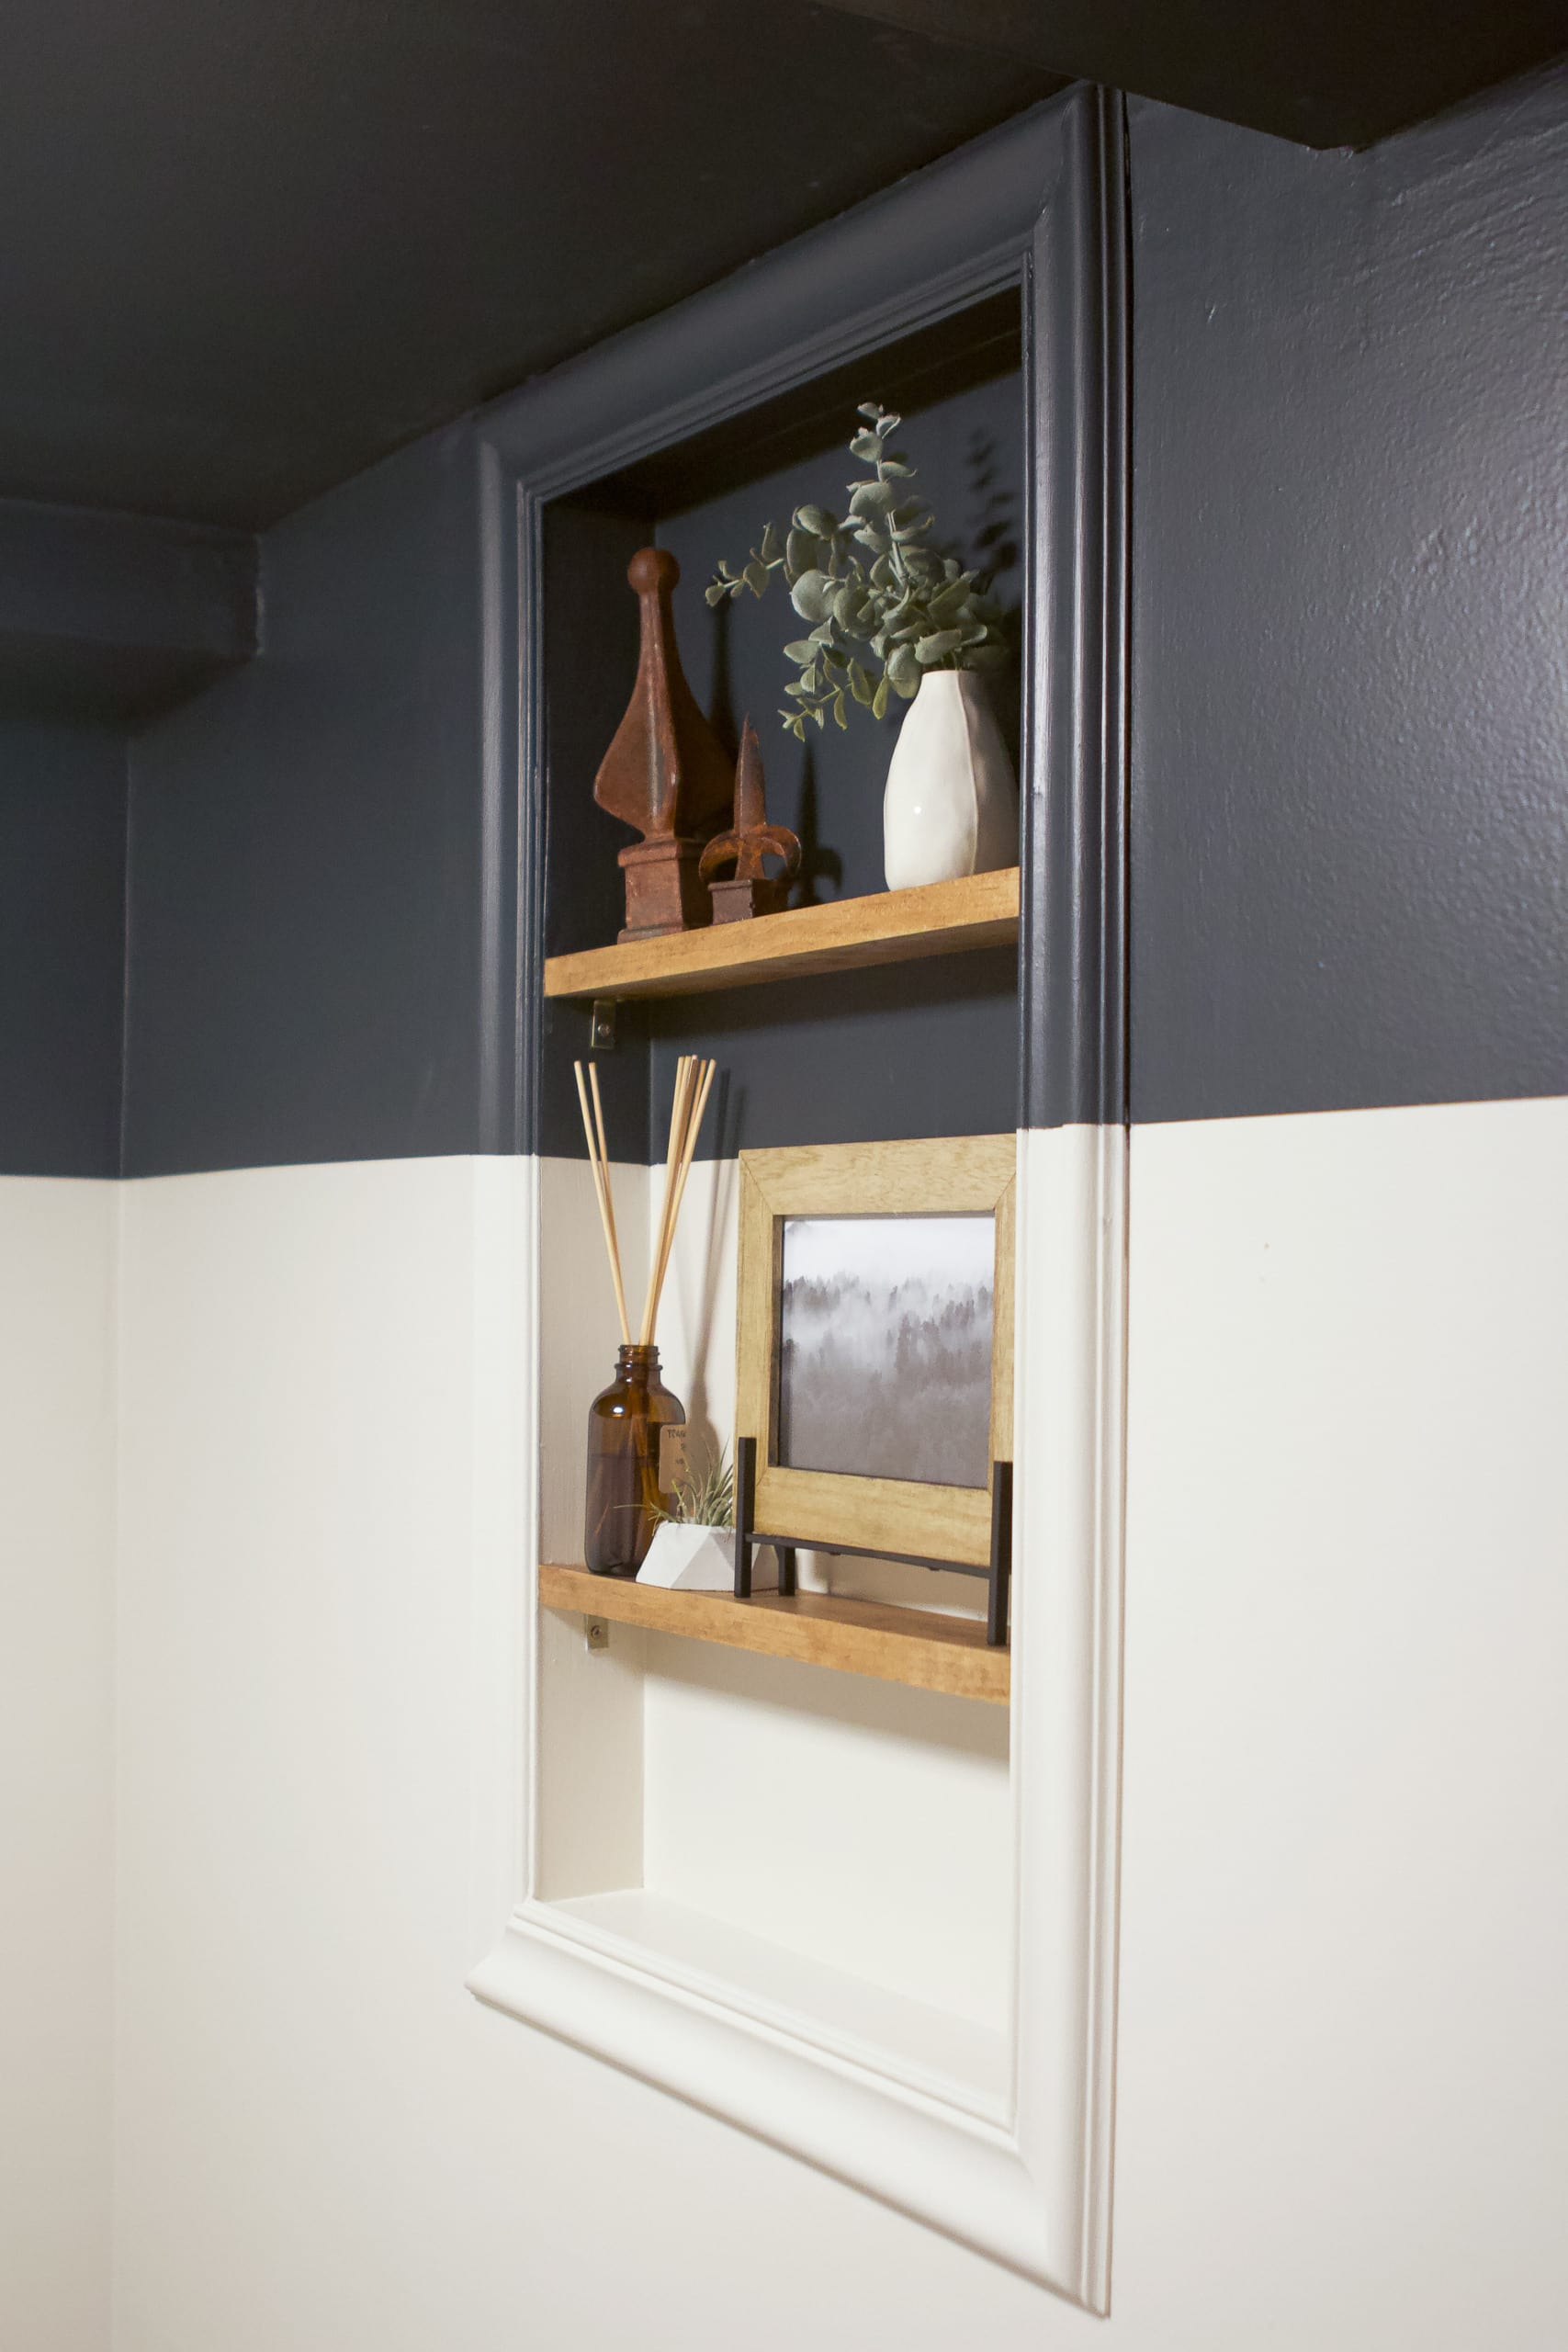 Our new window shelves